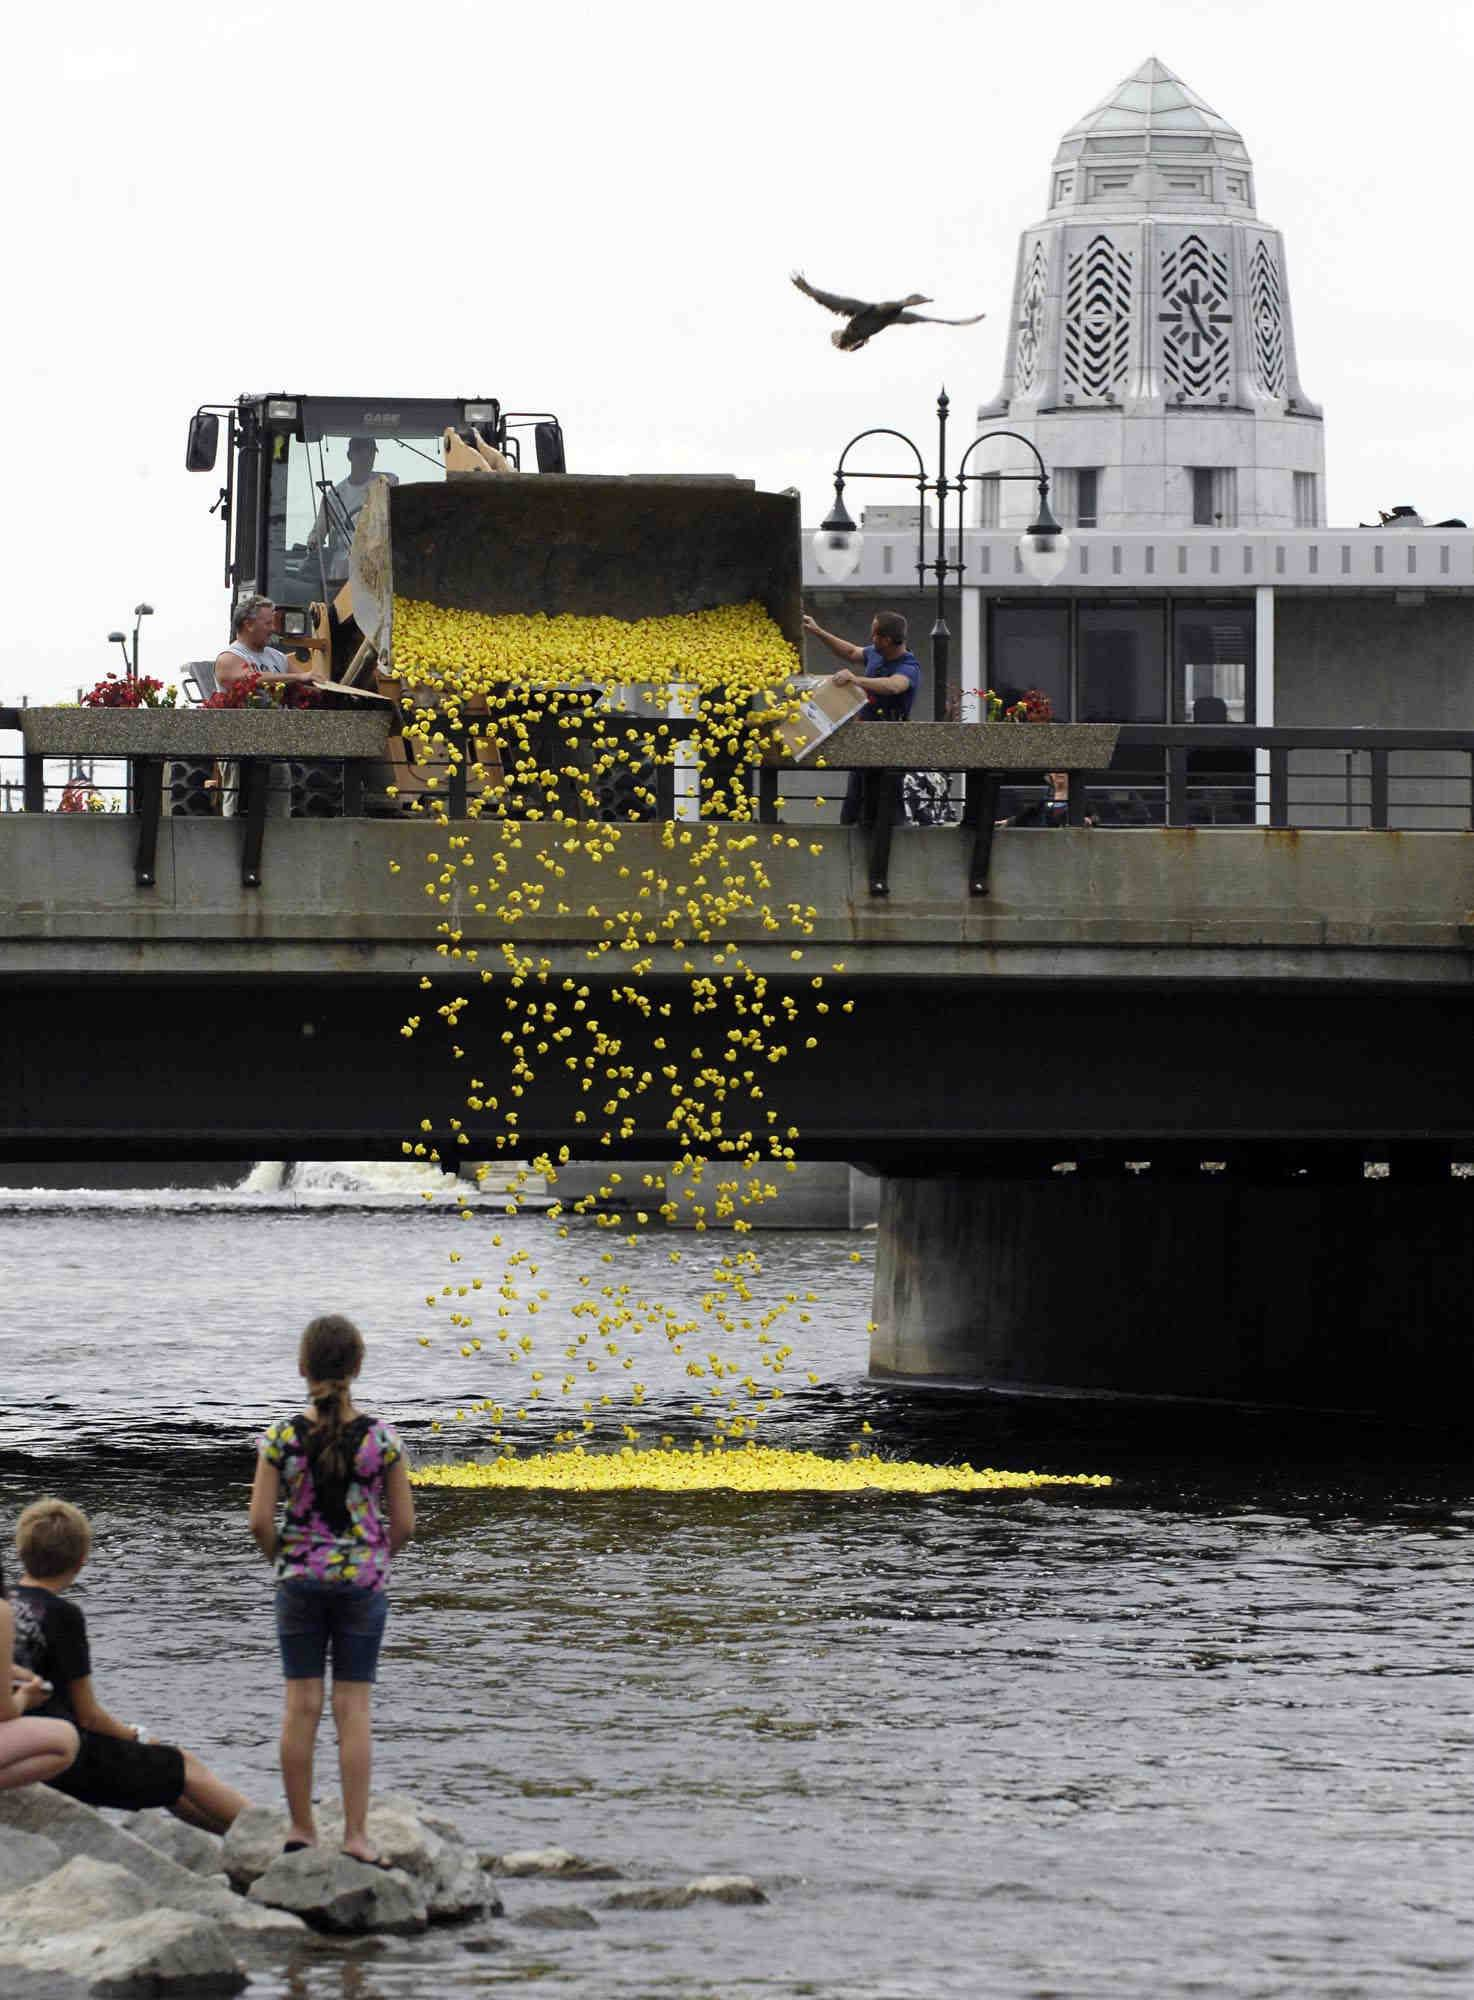 A real mallard flies away as 3,000 plastic ducks are poured into the Fox River from the Illinois Street bridge during the Ducky Derby at last year's City of St. Charles RiverFest. The ducks were sold to benefit St. Charles School District 303 Prevention Clubs and St. Charles Rotary Club scholarships.